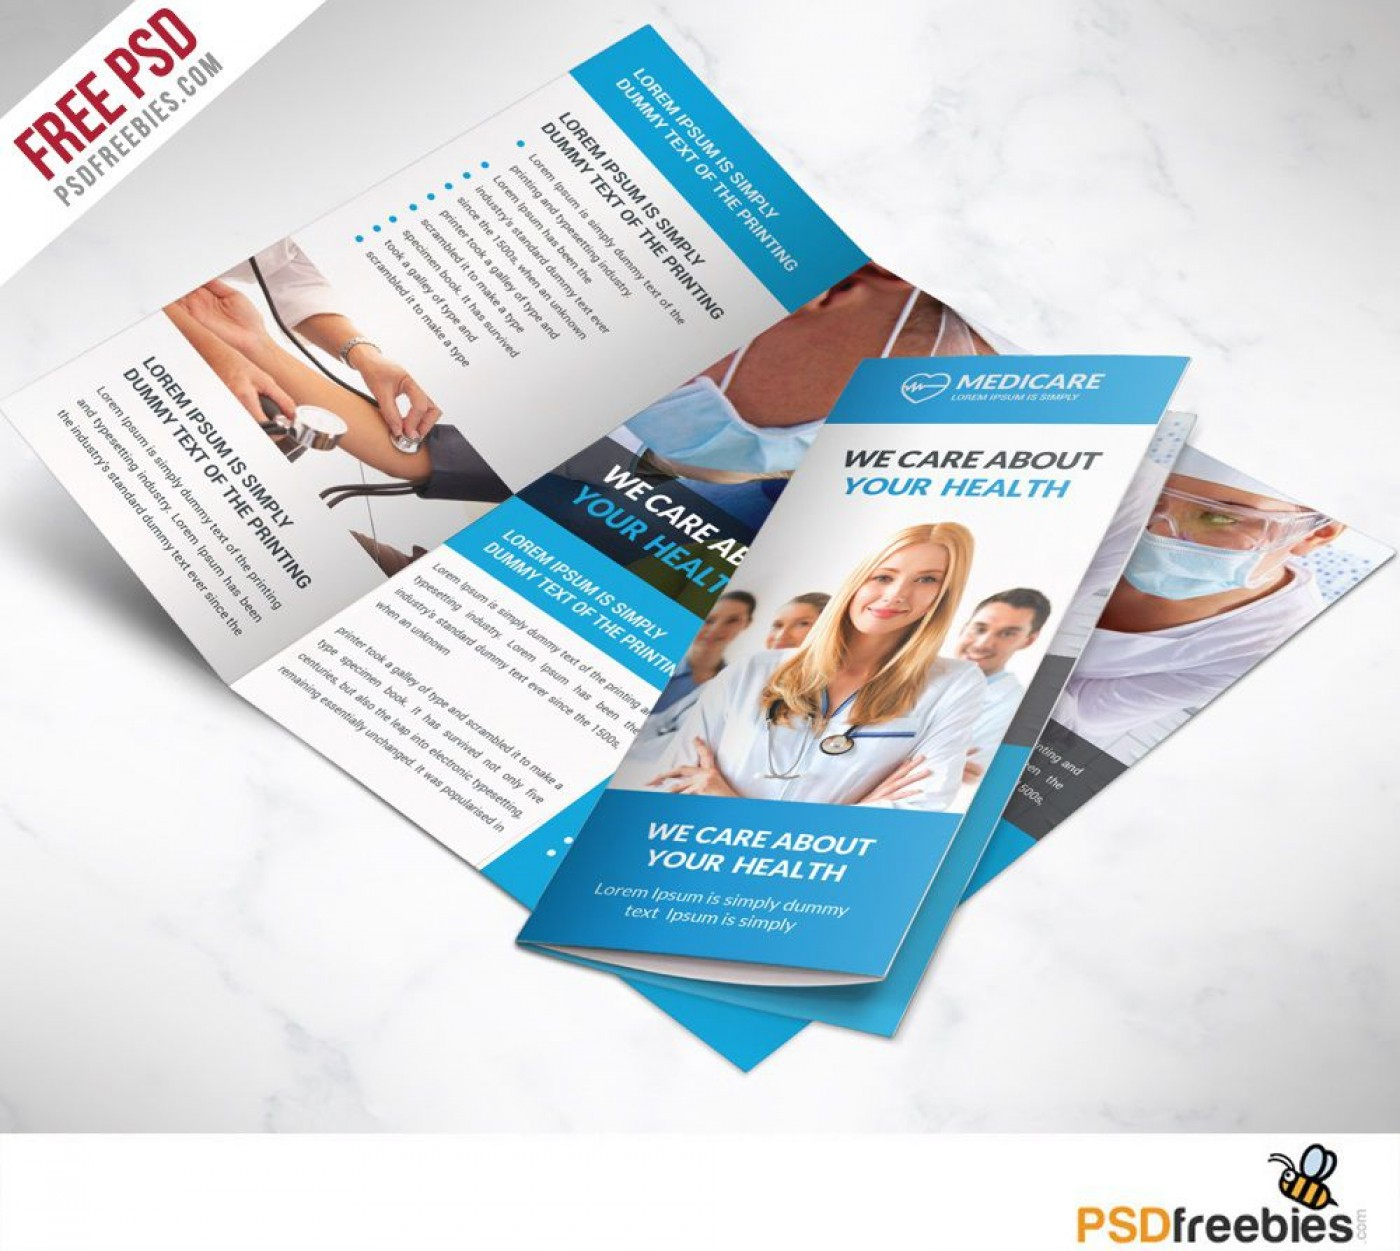 008 Stupendou Adobe Photoshop Brochure Template Free Download Inspiration 1400